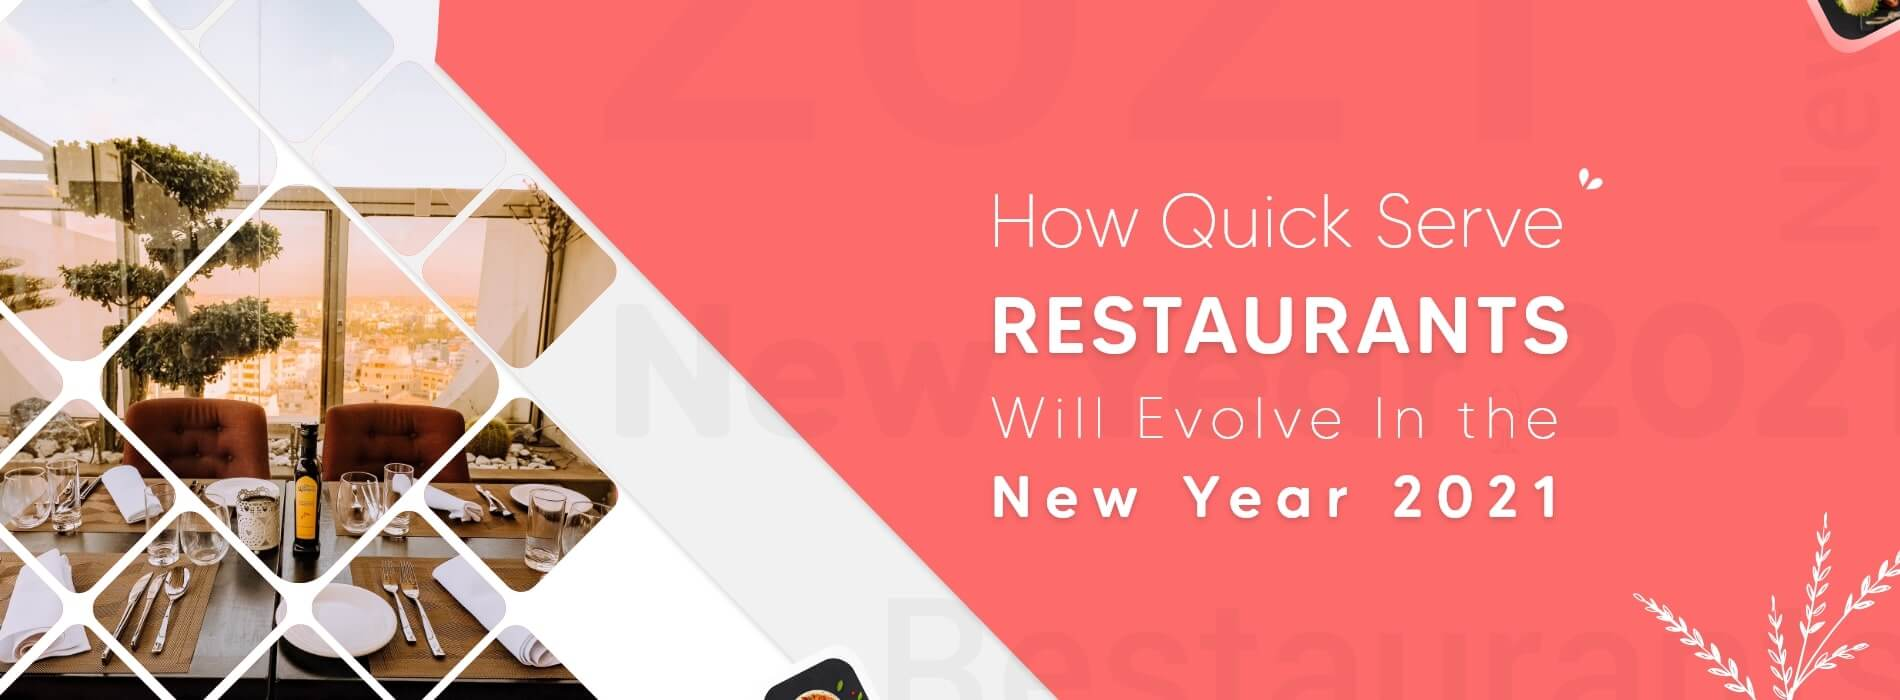 Top Online Food Delivery Industry Technology Trends 2021